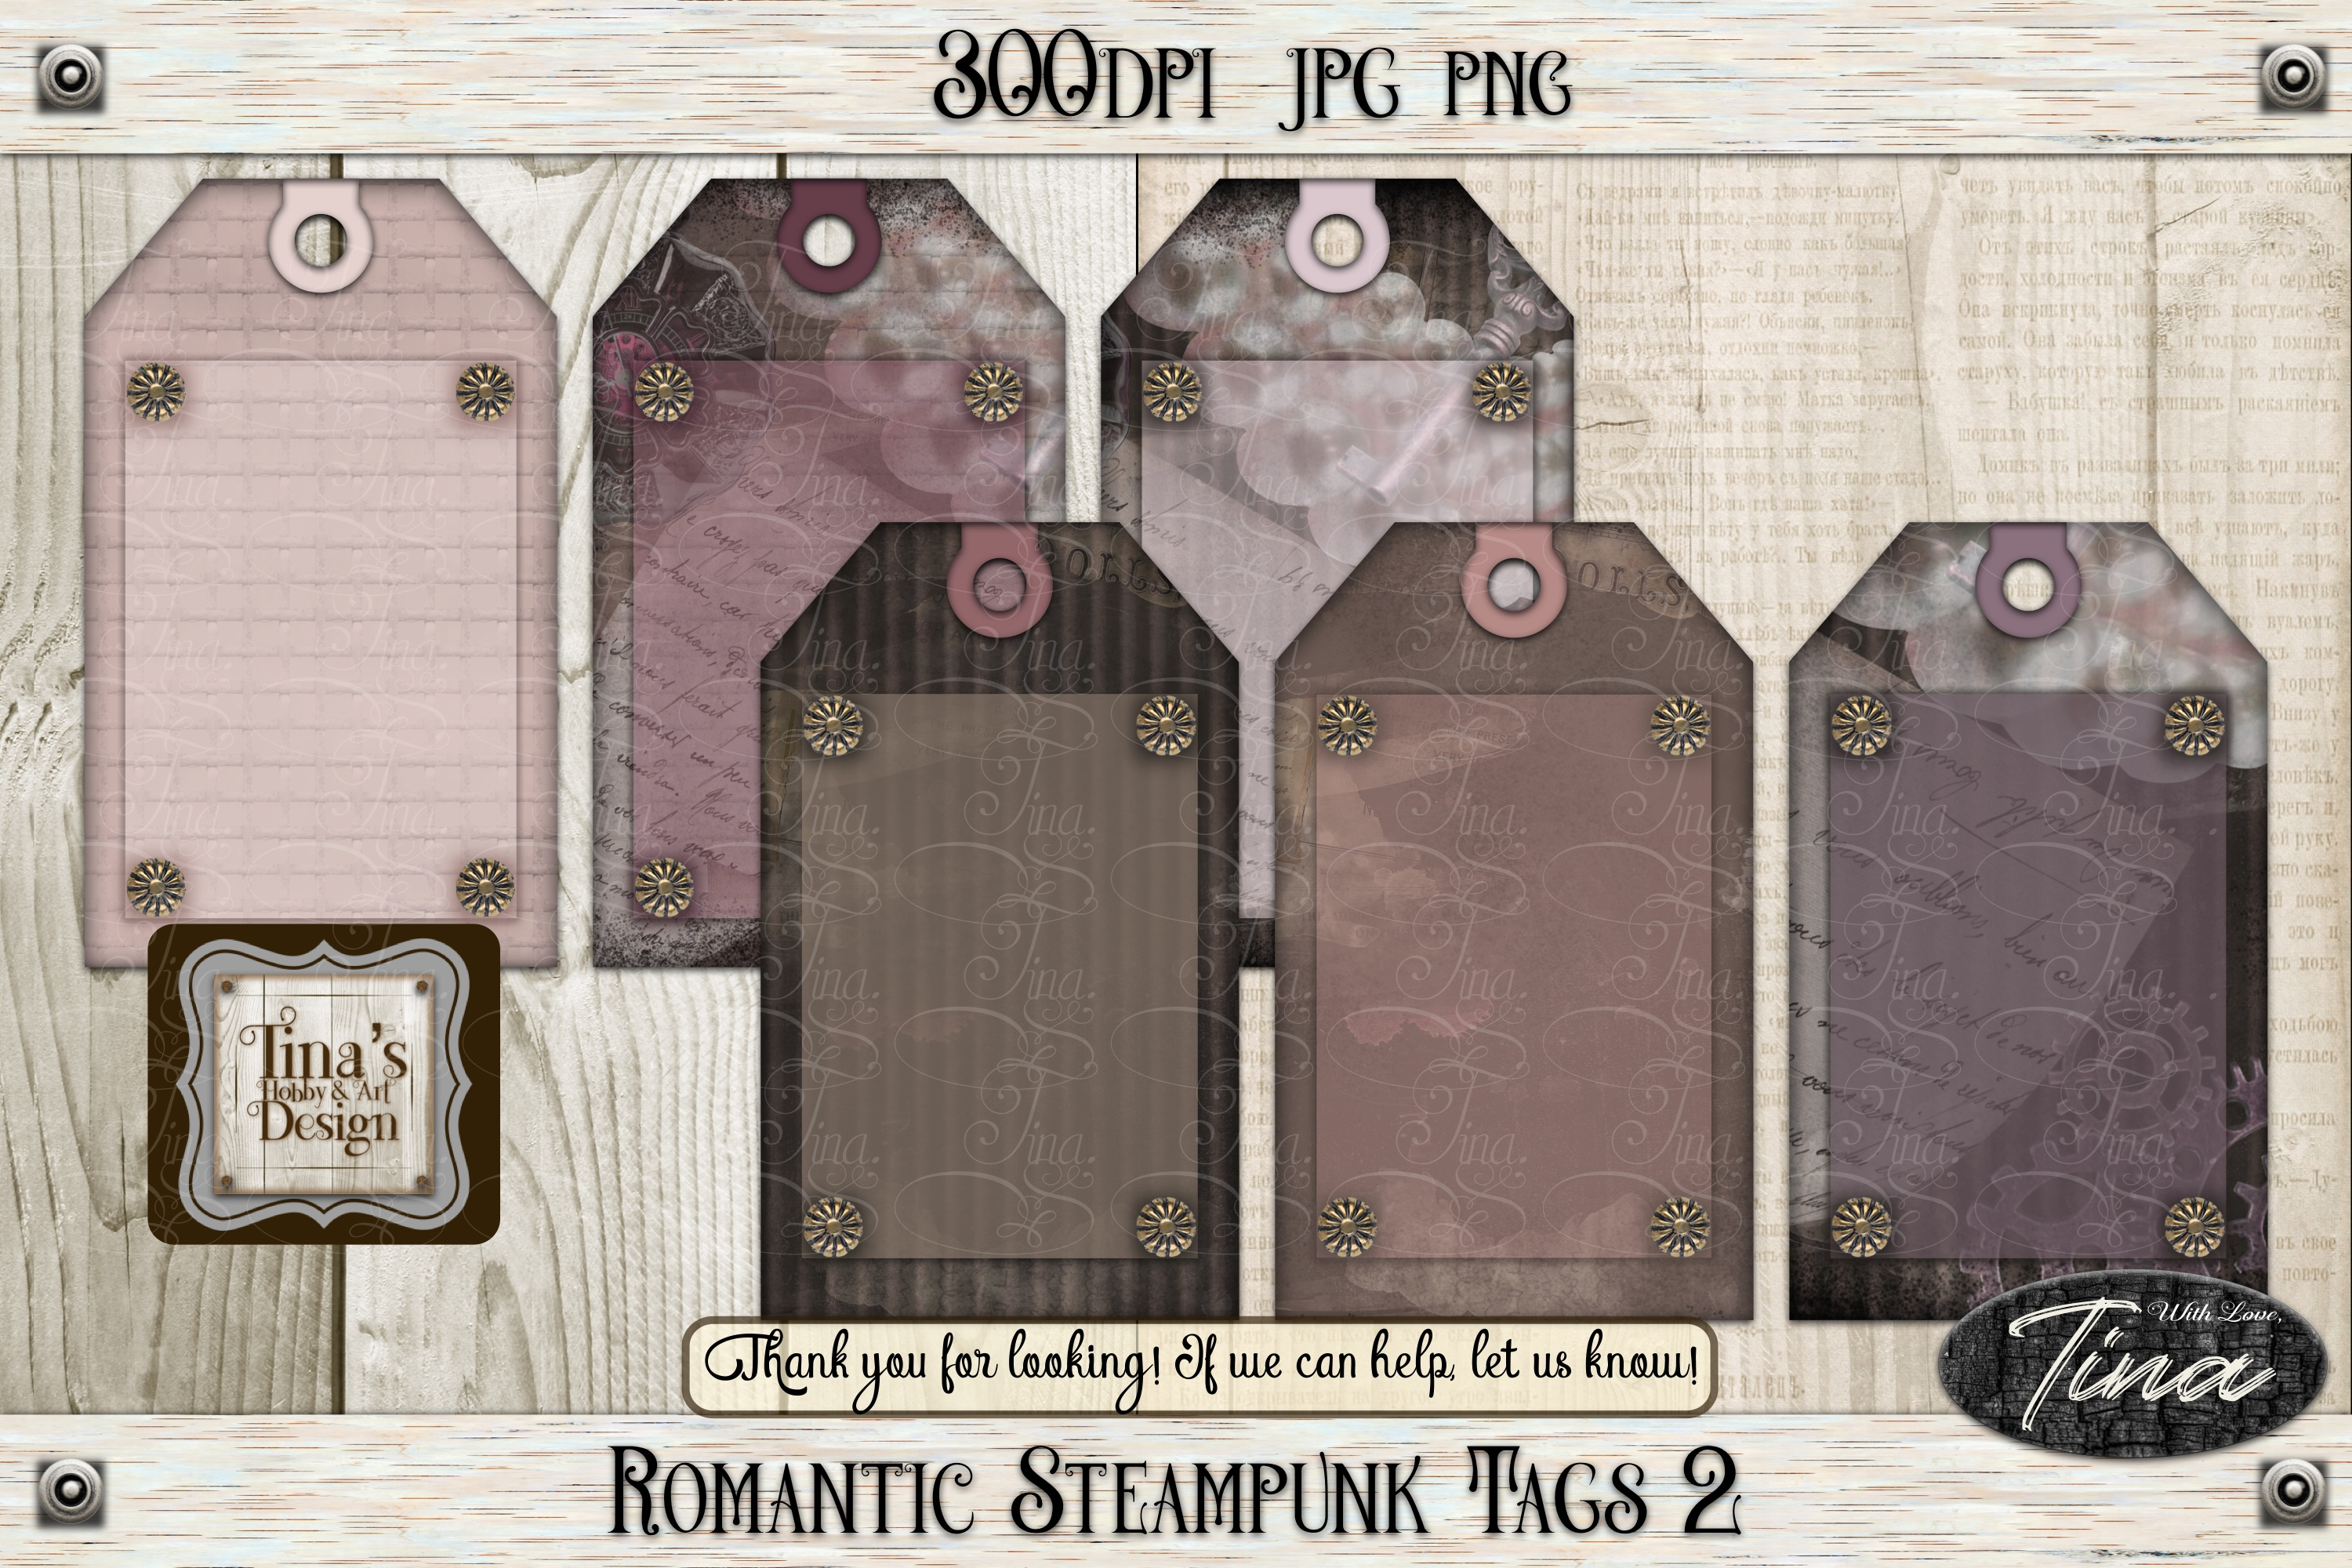 Romantic Steampunk 12 x 12 Collage Mauve Grunge 101918RS12 example image 6